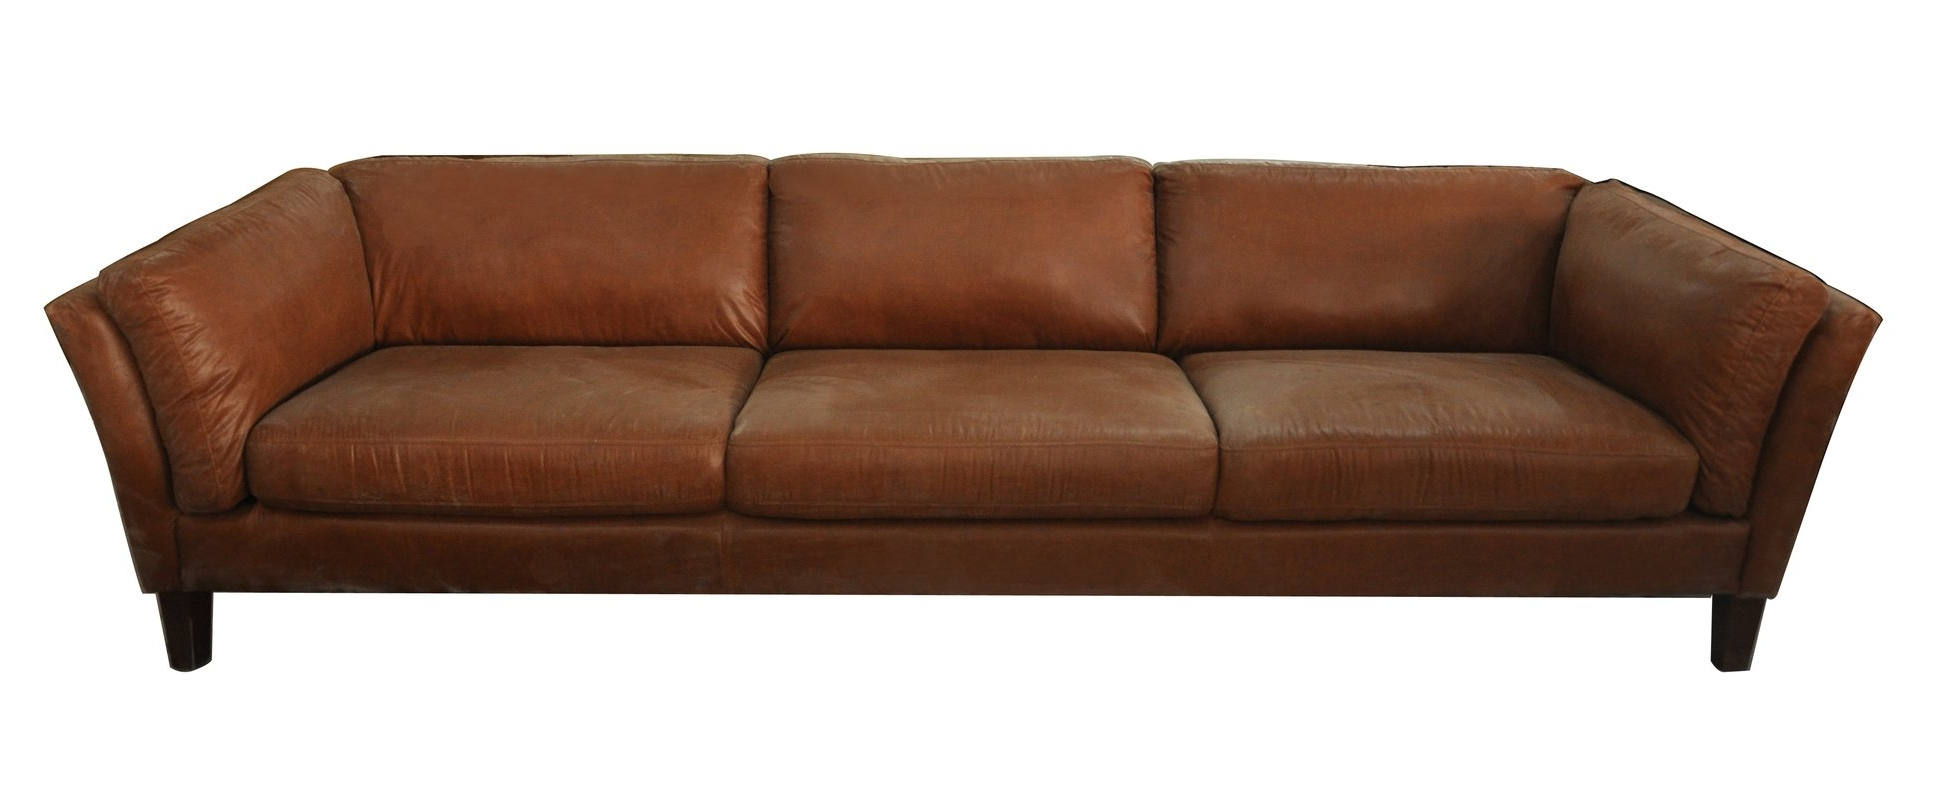 Recent Foundry Select Condron 3 Seater Leather Sofa & Reviews (View 16 of 20)